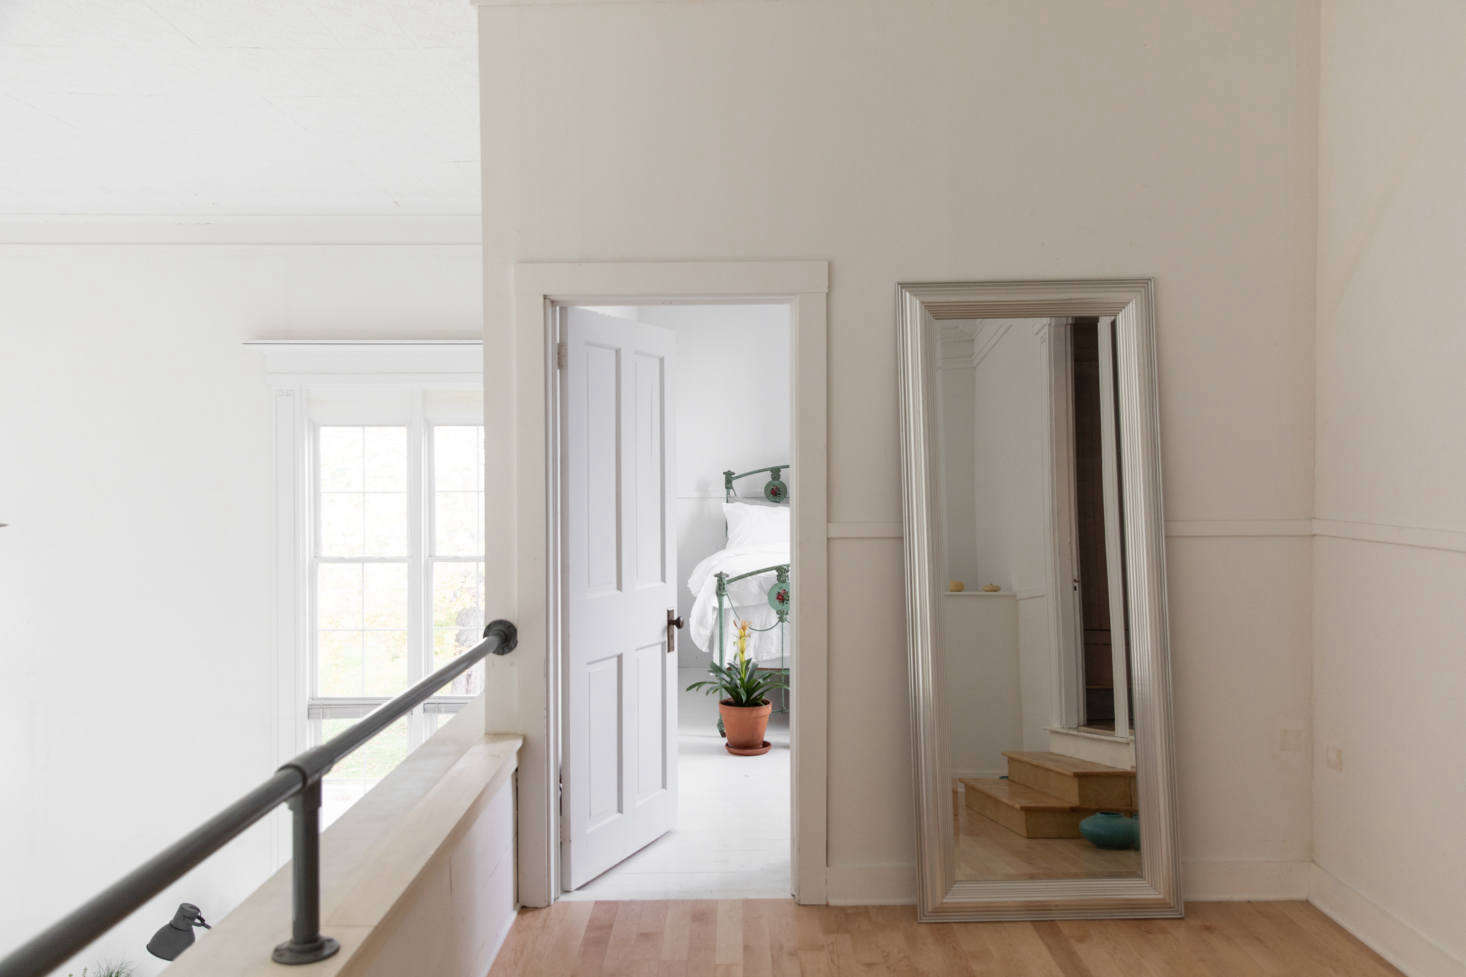 Upstairs on the landing, looking into the third bedroom.